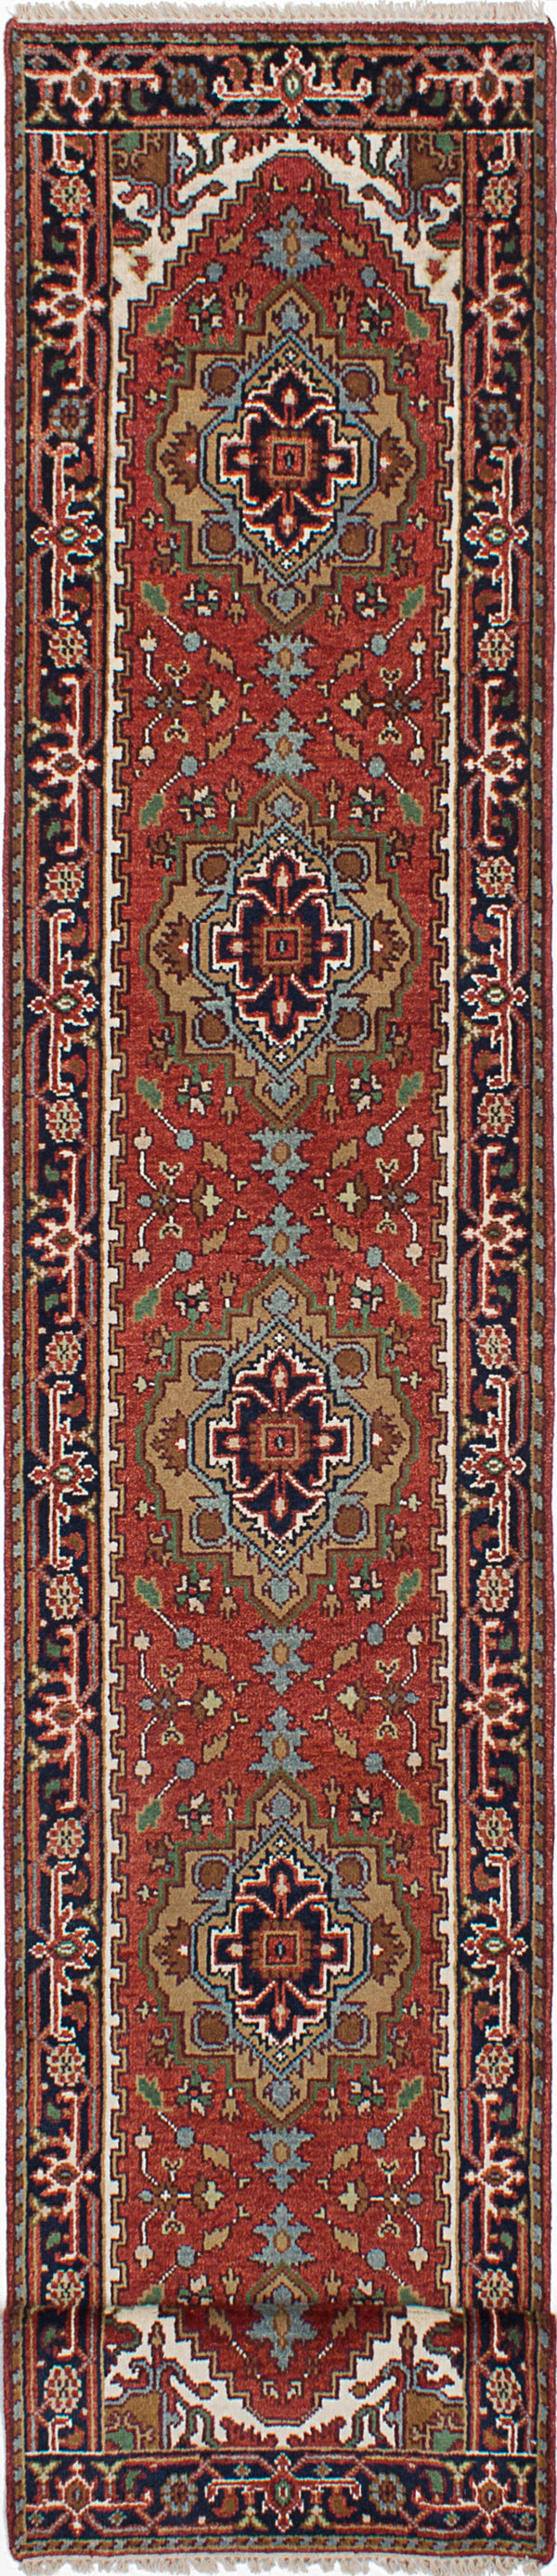 Hand-knotted Indian Floral  Traditional Serapi-Heritage Runner rug  Dark Copper, Navy Blue 2.6 x 15.1